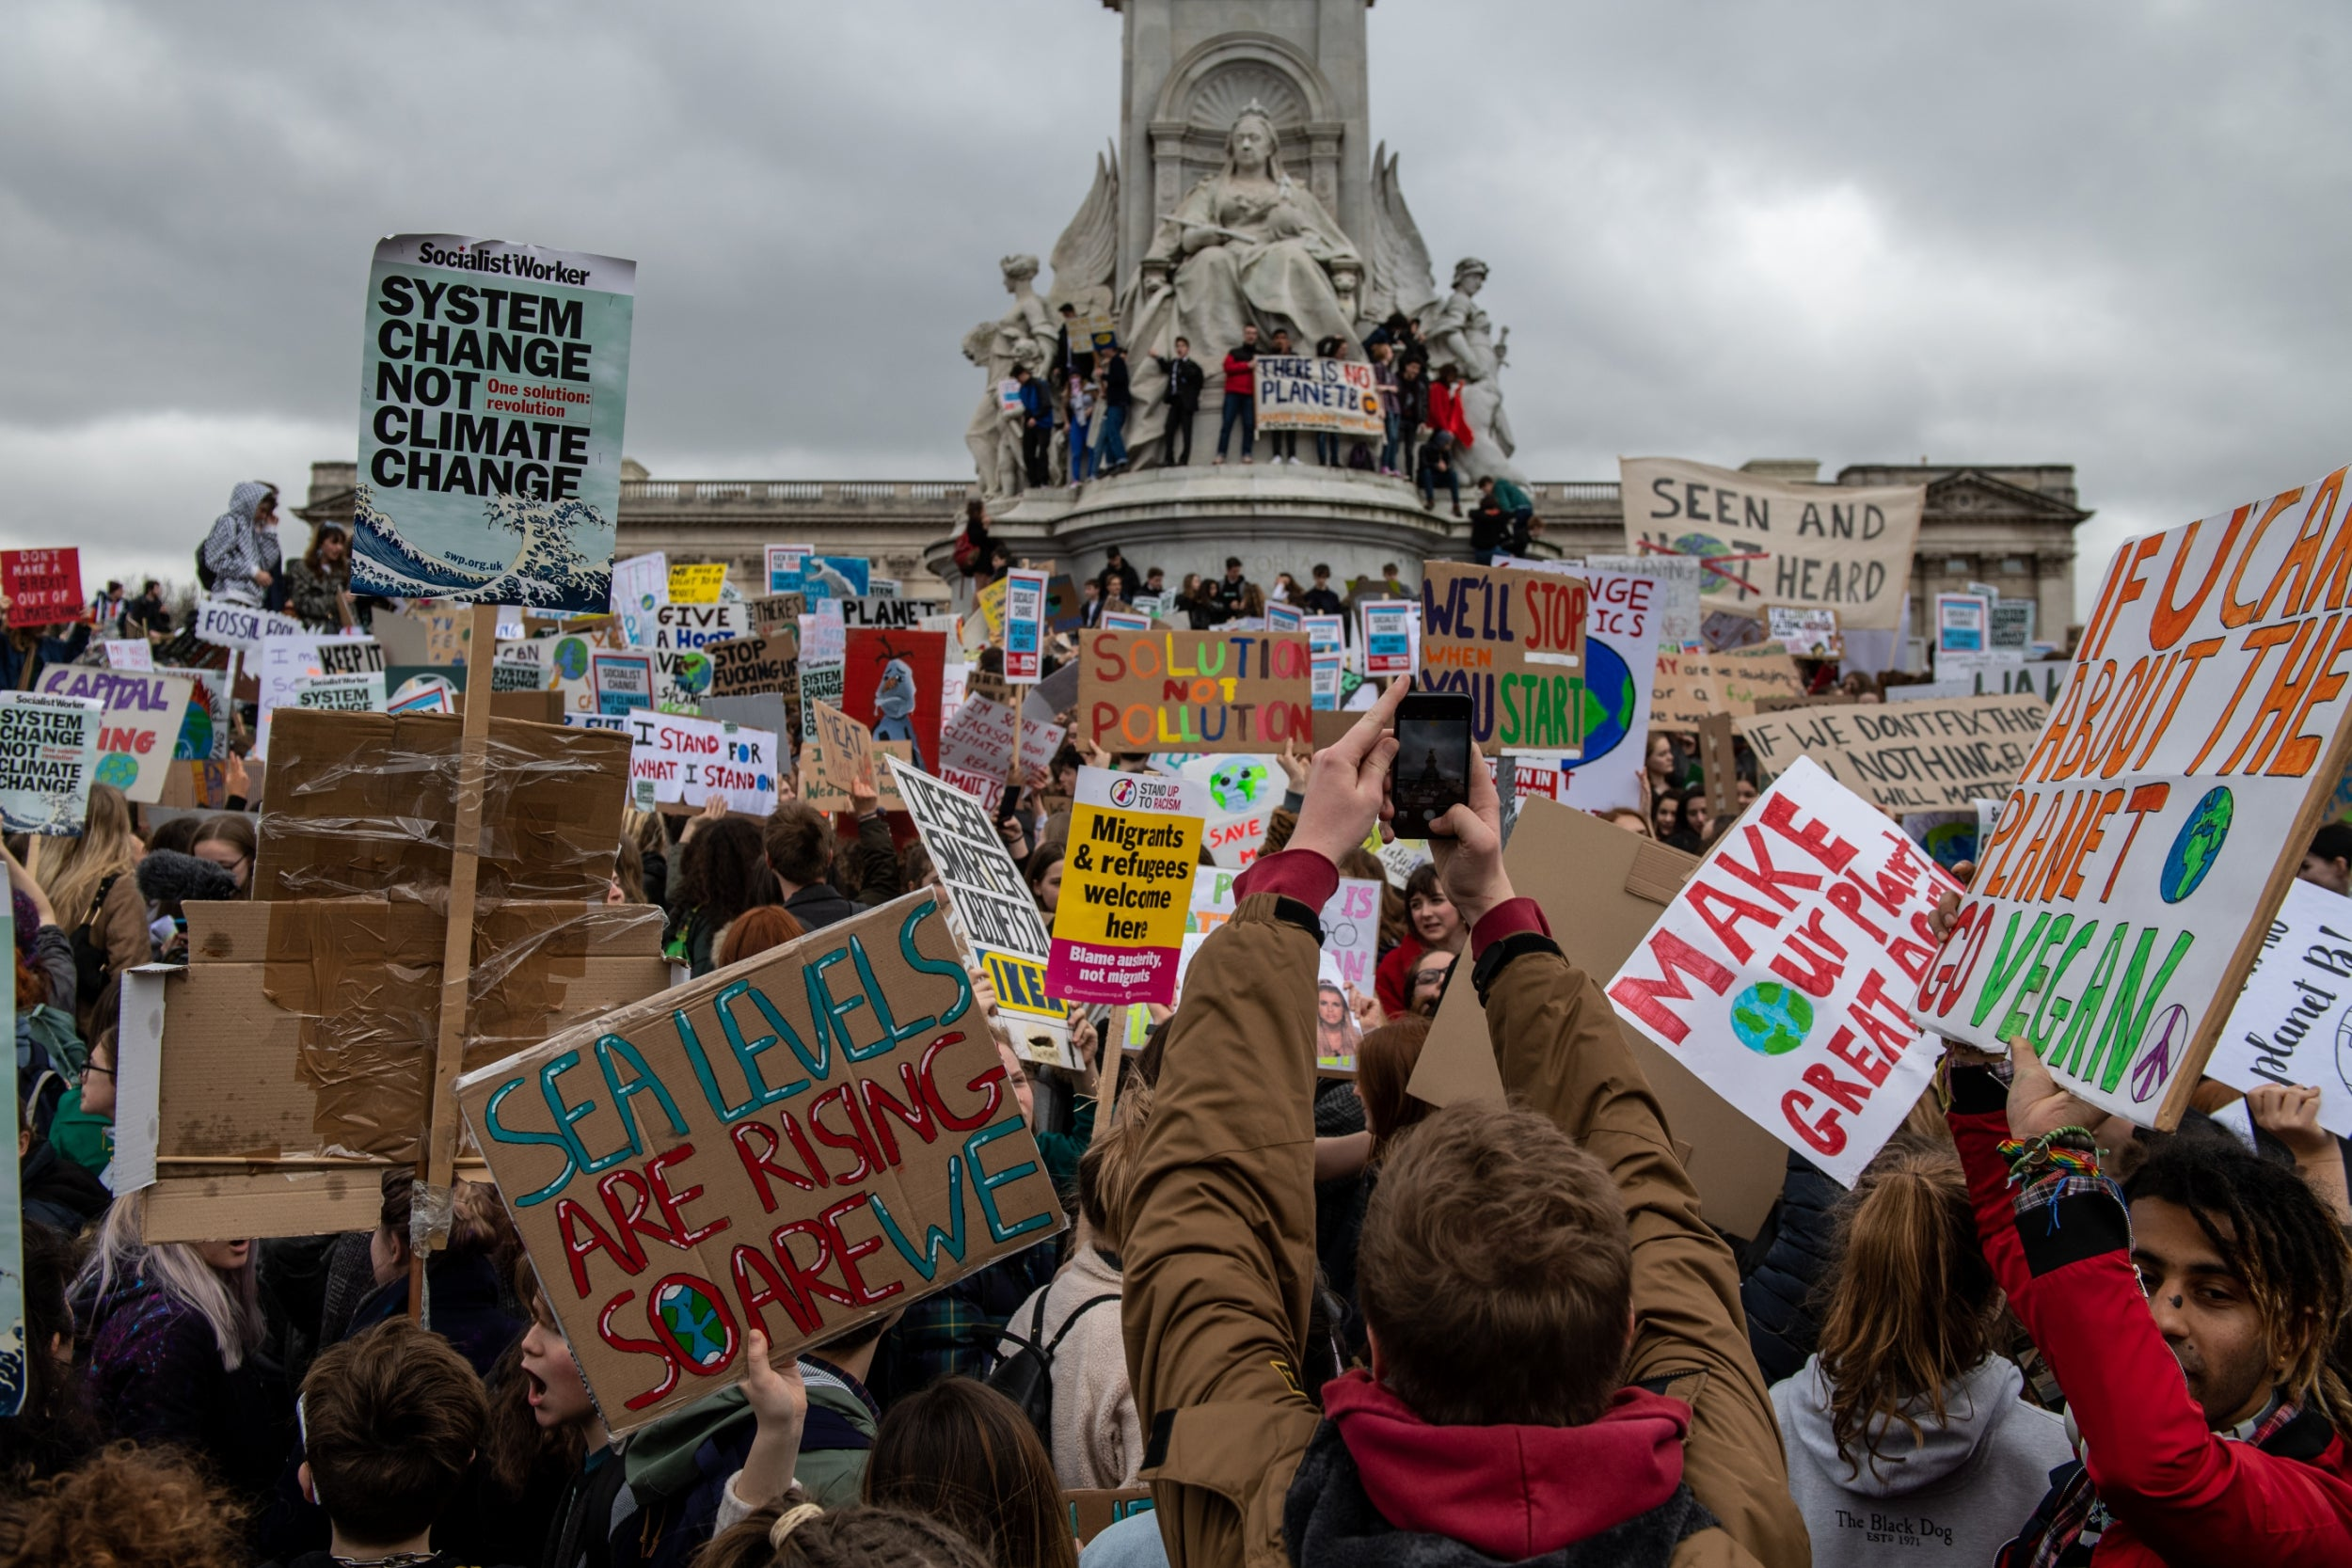 If you're striking for the climate this Friday, why not go vegan as well?